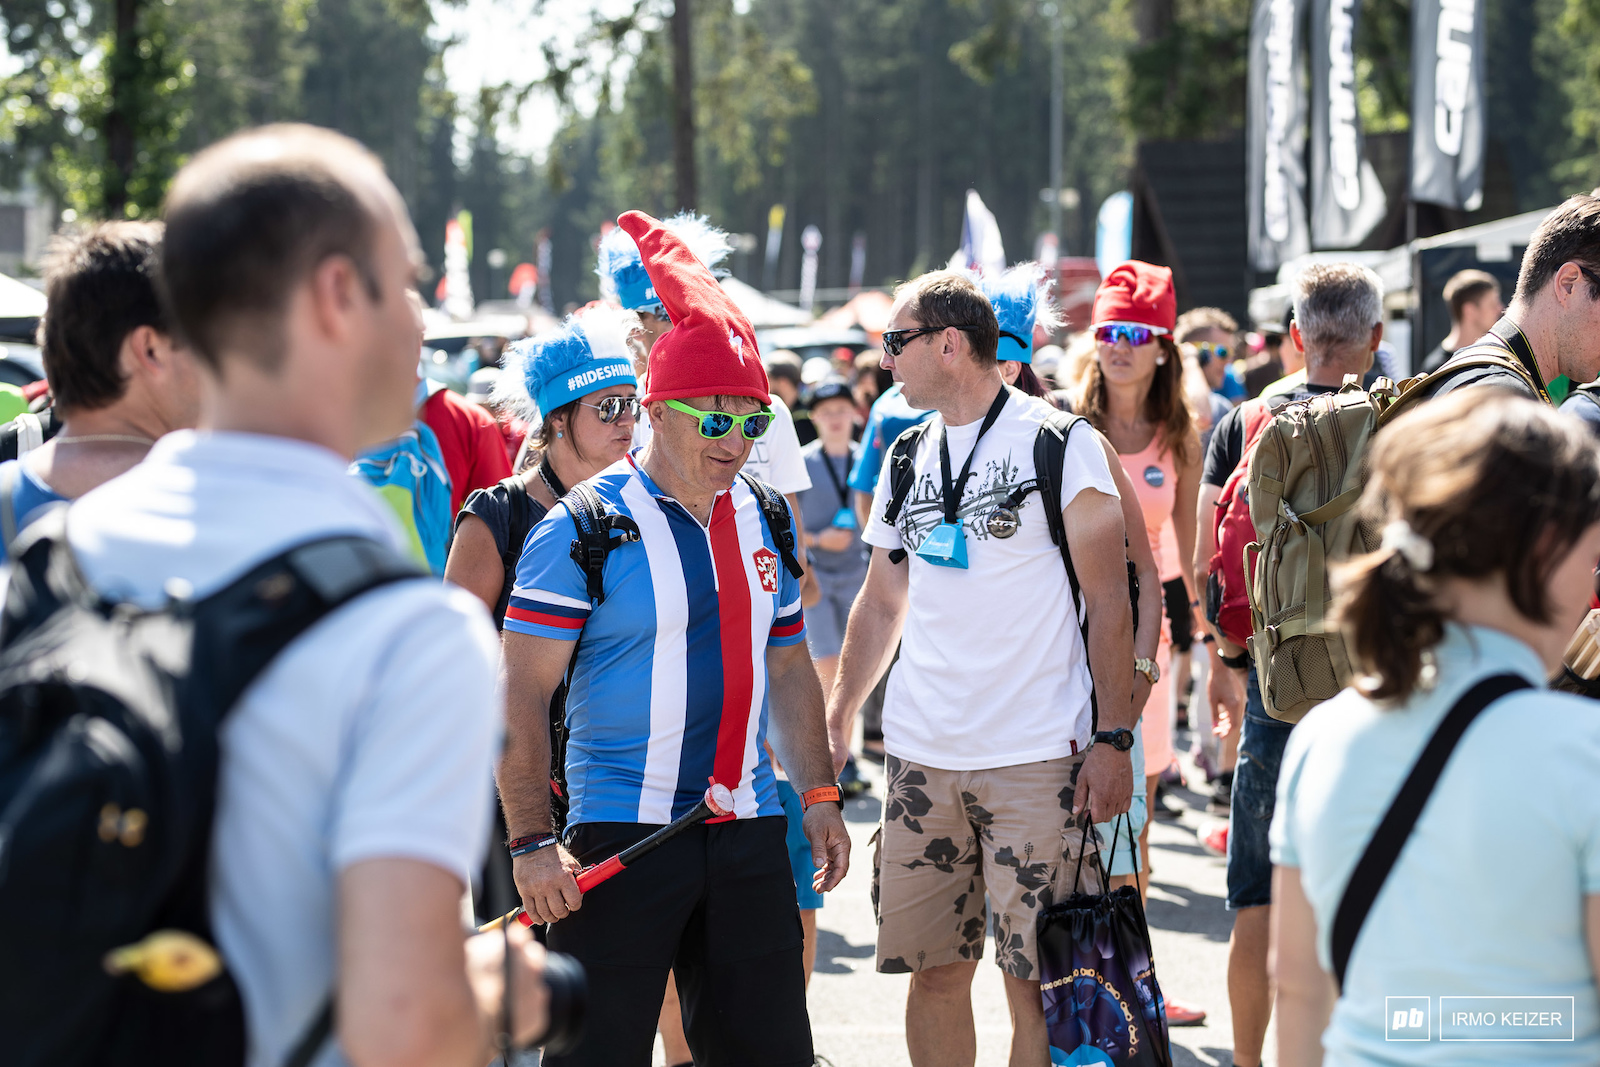 This event sets the benchmark for World Cups with regards to spectators. They were here at all races not just the men s elite race. Loud friendly and in numbers.